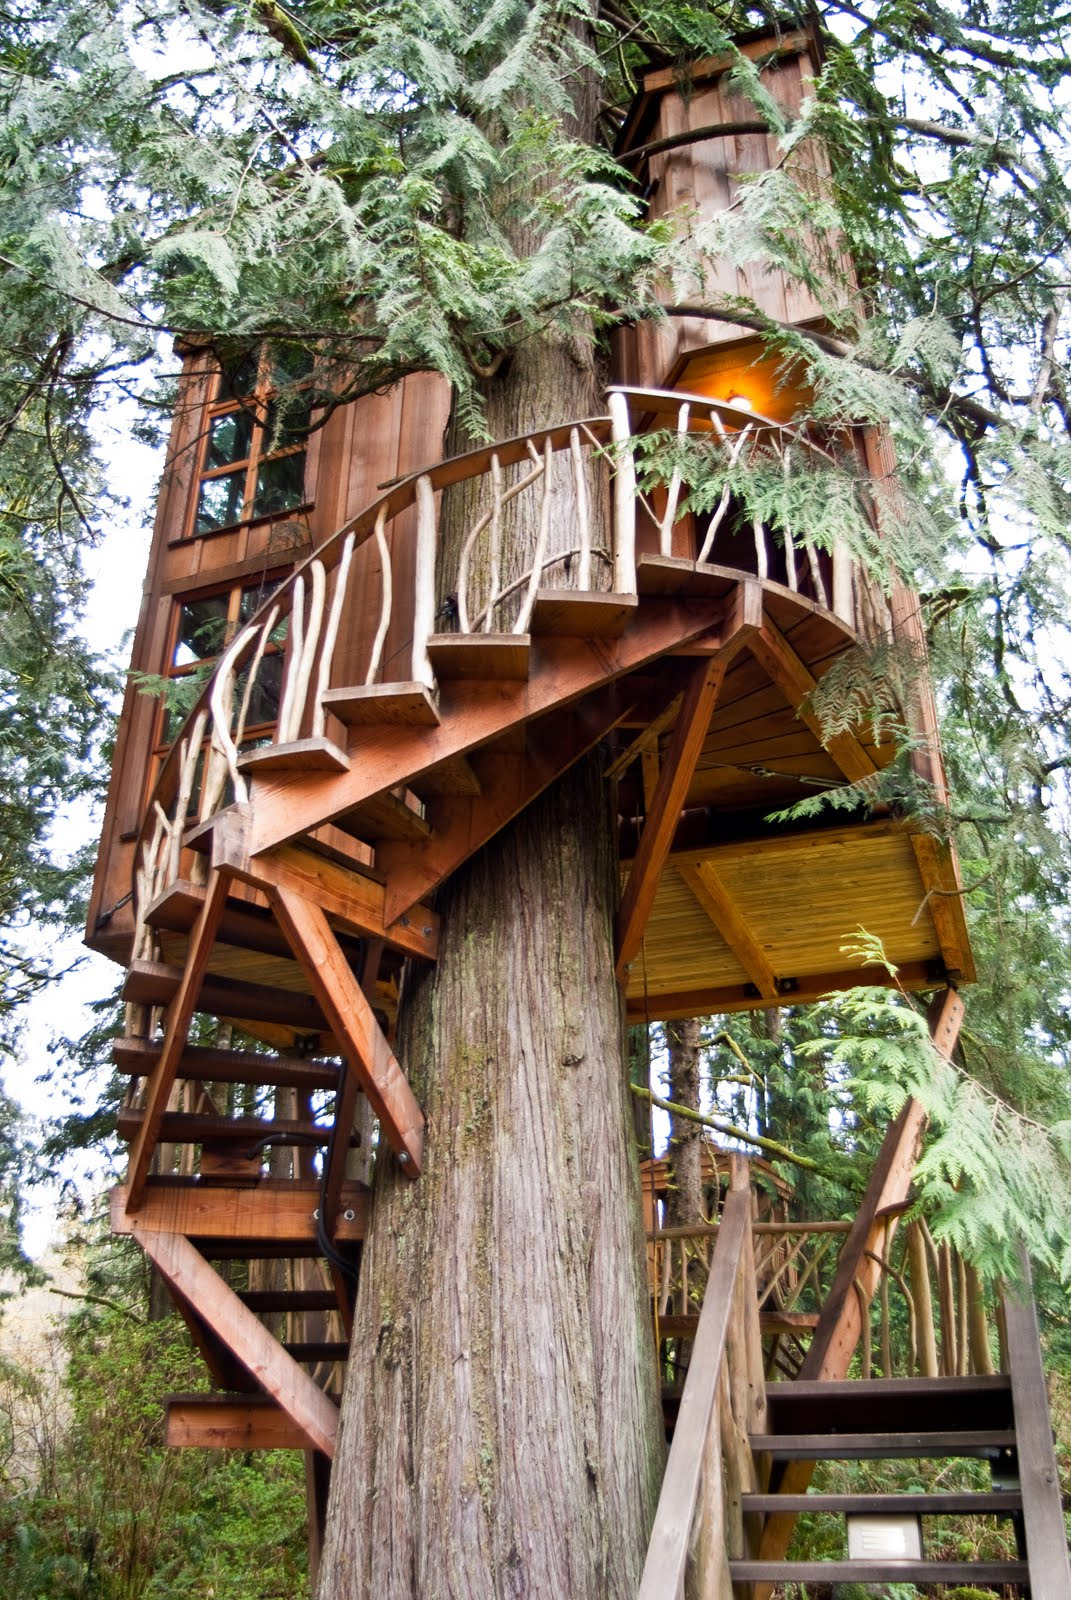 Greatest Houses In the World Inspirational 20 the Greatest Tree Houses In the World – Woodenwatchesclub